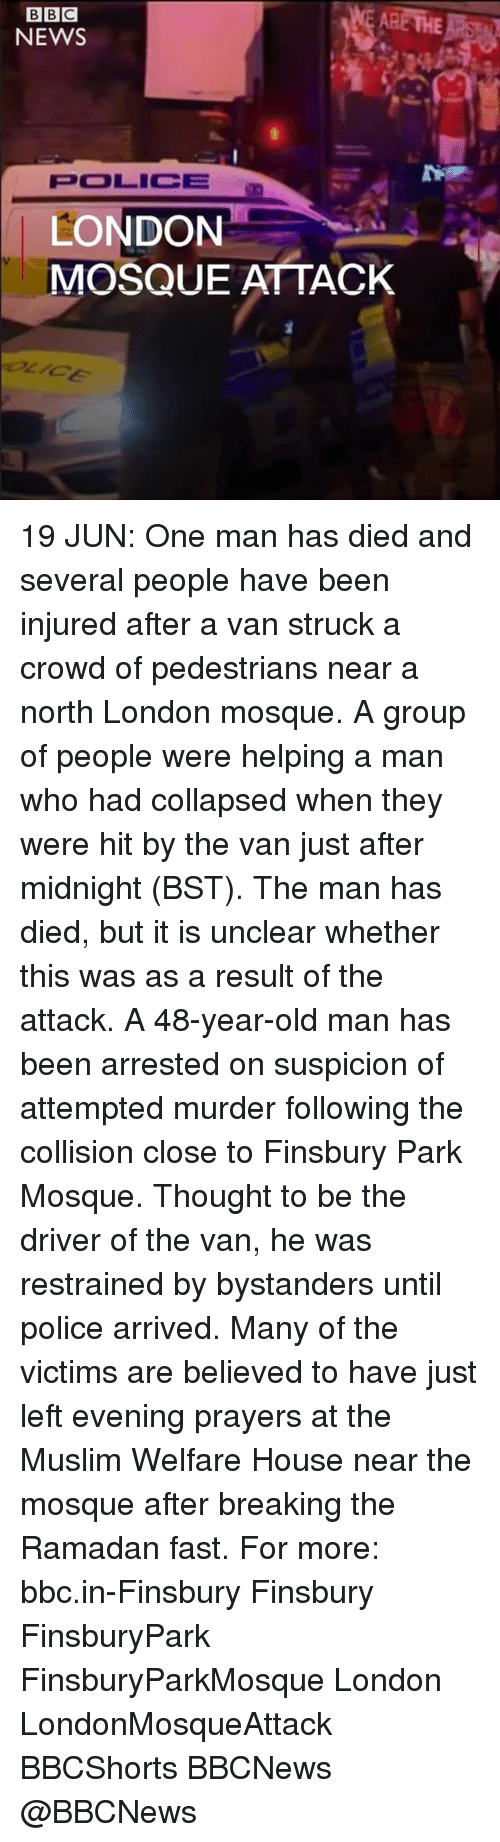 Memes, Muslim, and News: BBC  NEWS  POOLICIE  LONDON  MOSQUE ATTACK 19 JUN: One man has died and several people have been injured after a van struck a crowd of pedestrians near a north London mosque. A group of people were helping a man who had collapsed when they were hit by the van just after midnight (BST). The man has died, but it is unclear whether this was as a result of the attack. A 48-year-old man has been arrested on suspicion of attempted murder following the collision close to Finsbury Park Mosque. Thought to be the driver of the van, he was restrained by bystanders until police arrived. Many of the victims are believed to have just left evening prayers at the Muslim Welfare House near the mosque after breaking the Ramadan fast. For more: bbc.in-Finsbury Finsbury FinsburyPark FinsburyParkMosque London LondonMosqueAttack BBCShorts BBCNews @BBCNews